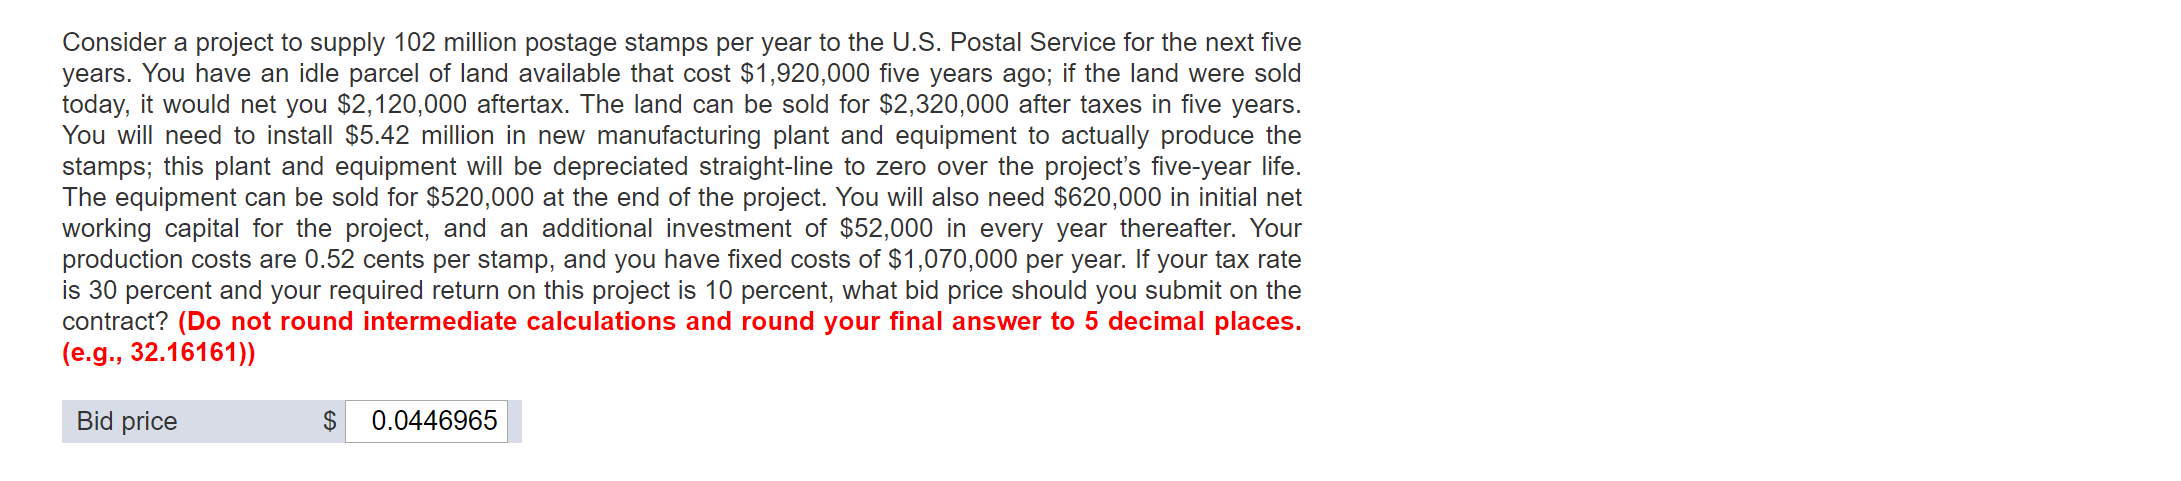 Consider a project to supply 102 million postage stamps per year to the U.S. Postal Service for the next five years. You have an idle parcel of land available that cost $1,920,000 five years ago; if the land were sold today, it would net you $2,120,000 aftertax. The land can be sold for $2,320,000 after taxes in five years. You will need to install $5.42 million in new manufacturing plant and equipment to actually produce the stamps; this plant and equipment will be depreciated straight-line to zero over the project's five-year life. The equipment can be sold for $520,000 at the end of the project. You will also need $620,000 in initial net working capital for the project, and an additional investment of $52,000 in every year thereafter. Your production costs are 0.52 cents per stamp, and you have fixed costs of $1,070,000 per year. If your tax rate is 30 percent and your required return on this project is 10 percent, what bid price should you submit on the contract? (Do not round intermediate calculations and round your final answer to 5 decimal places. (e.g., 32.16161)) Bid price 0.0446965